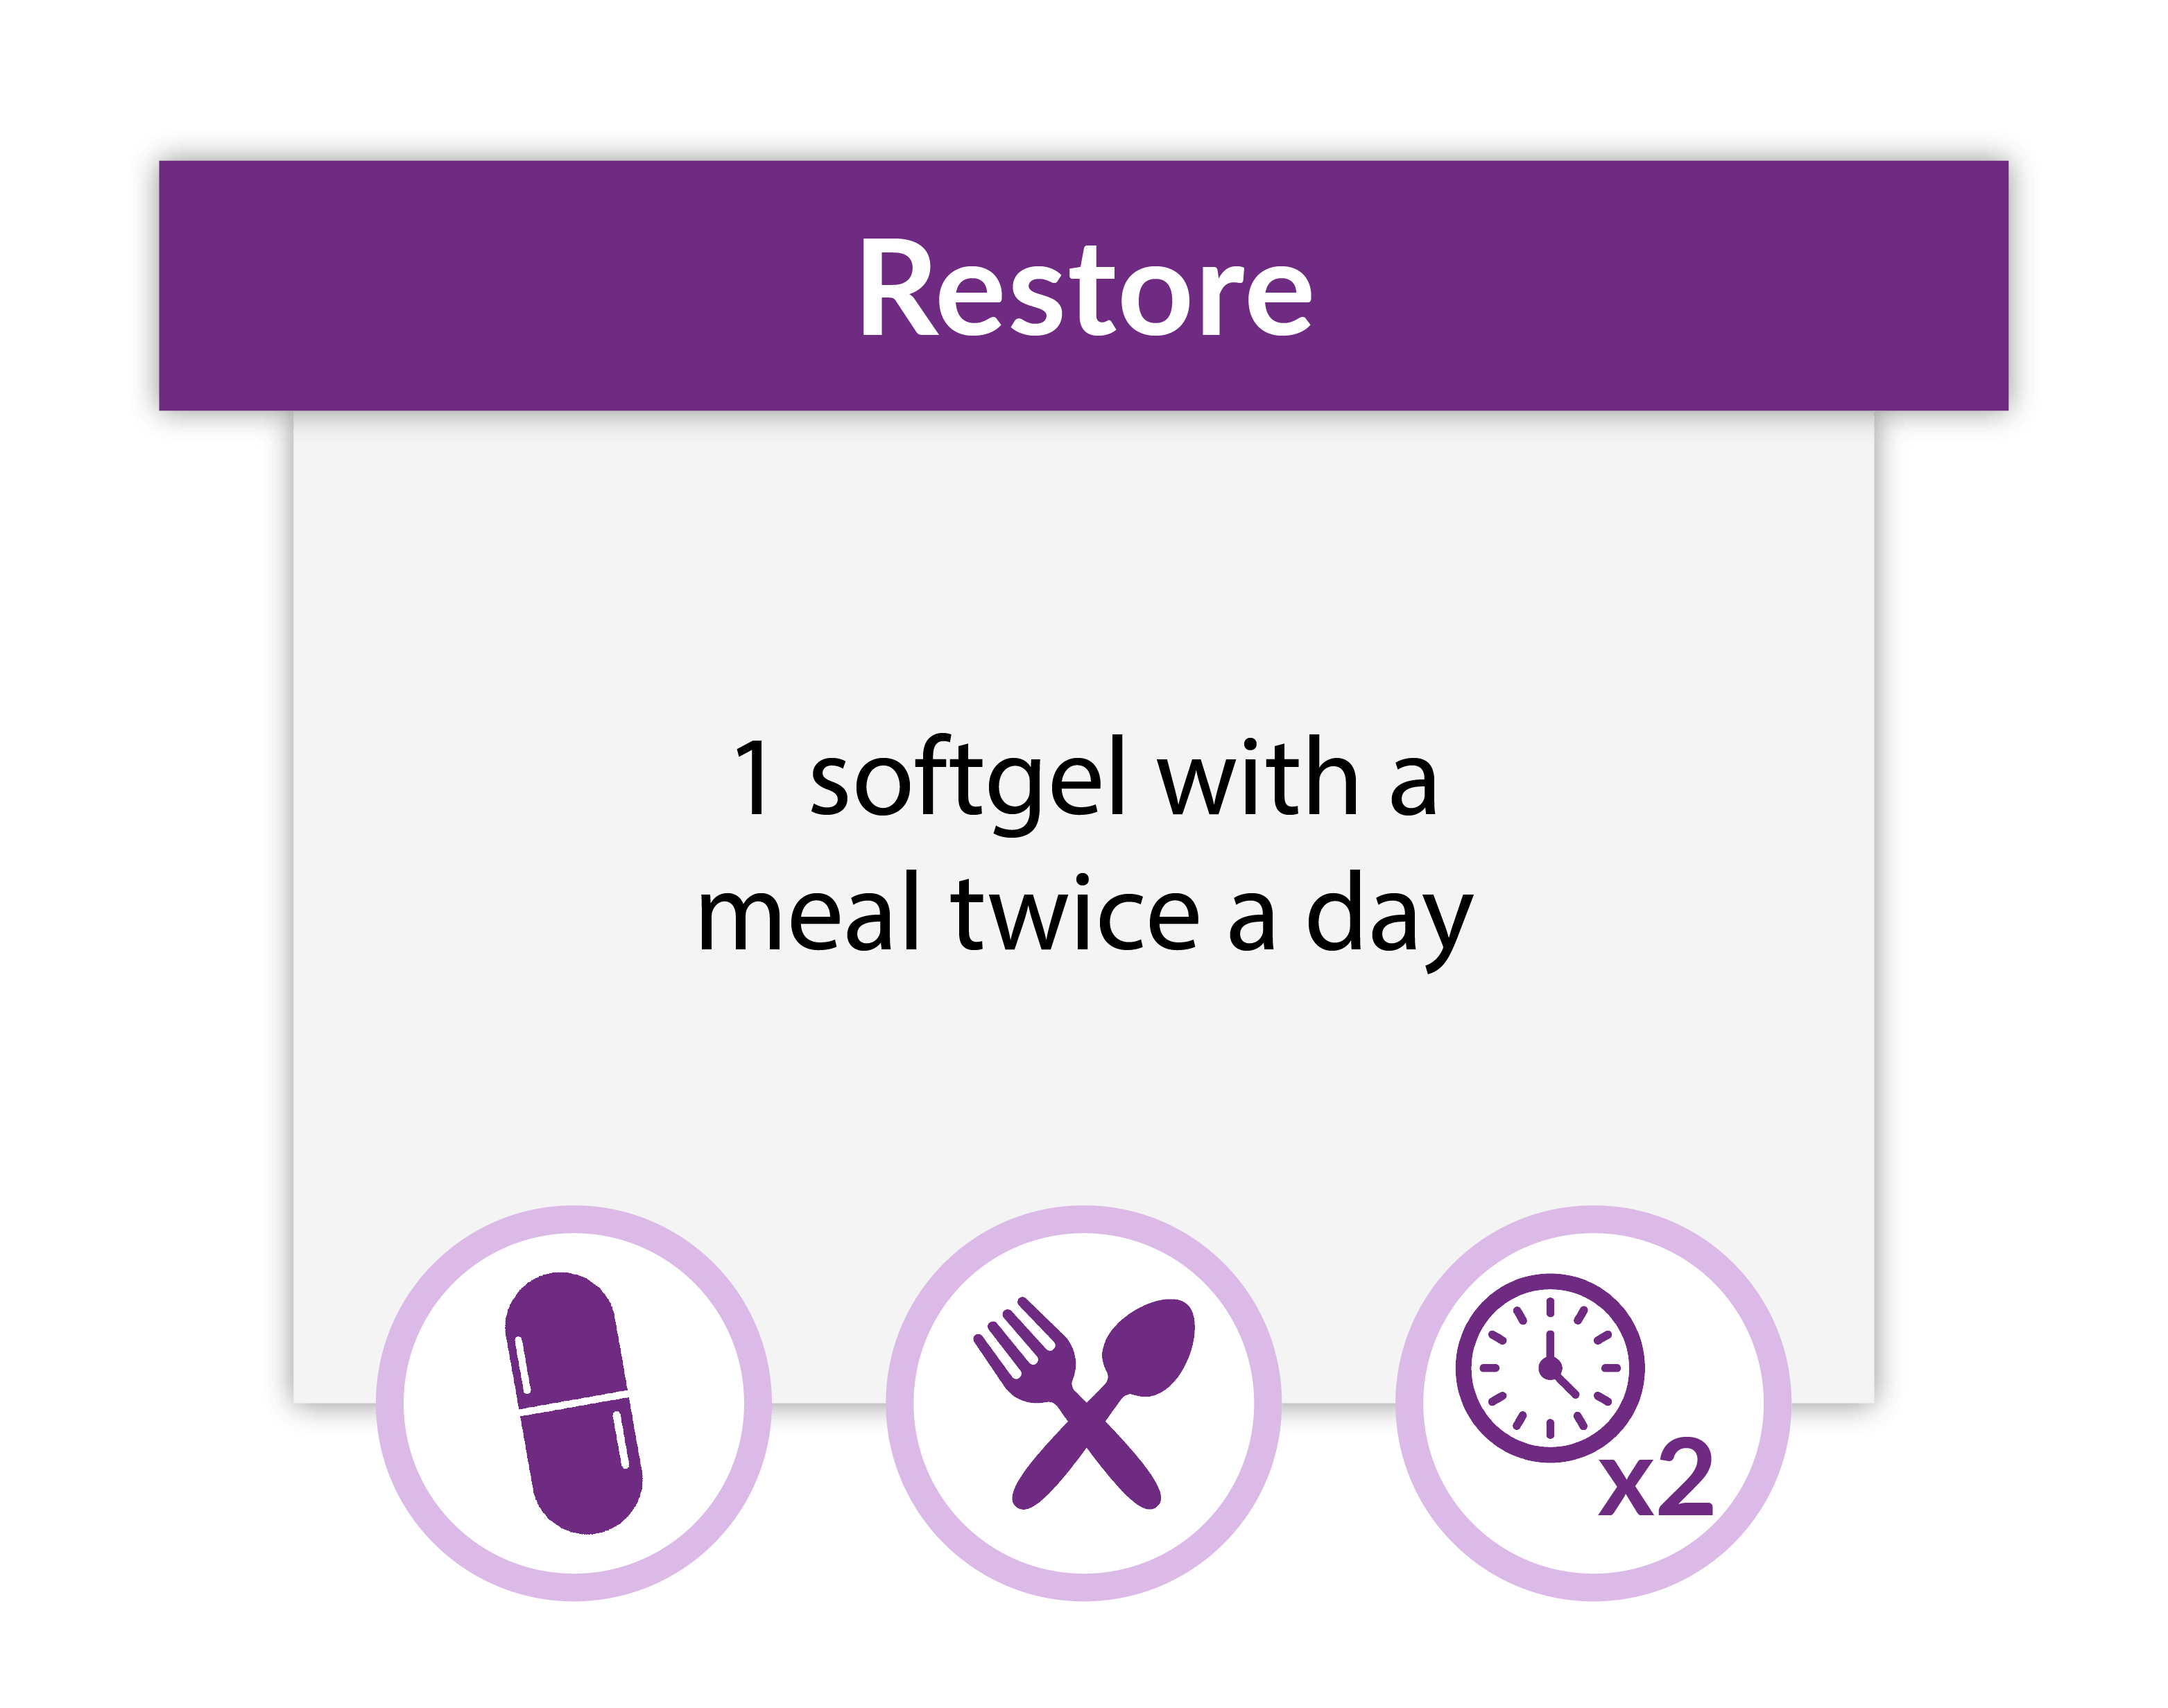 Instruct your patients to take one Restore softgel with a meal twice a day.